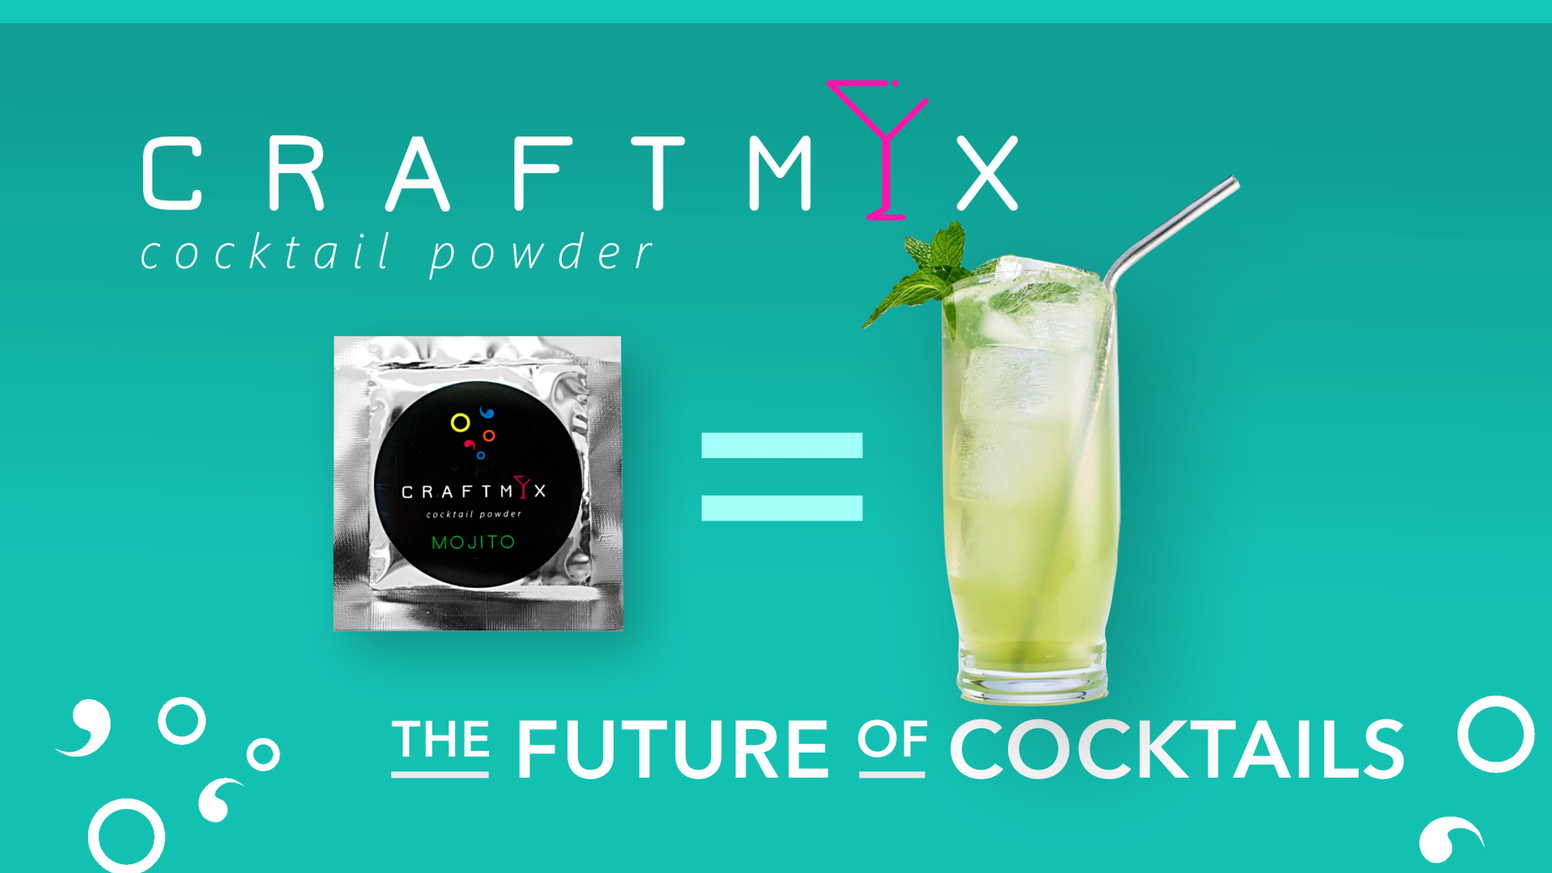 Craftmix is the FUTURE OF COCKTAILS with low sugar, low calorie, vegan, soy free, dairy free, gluten free, INSTANT craft cocktails